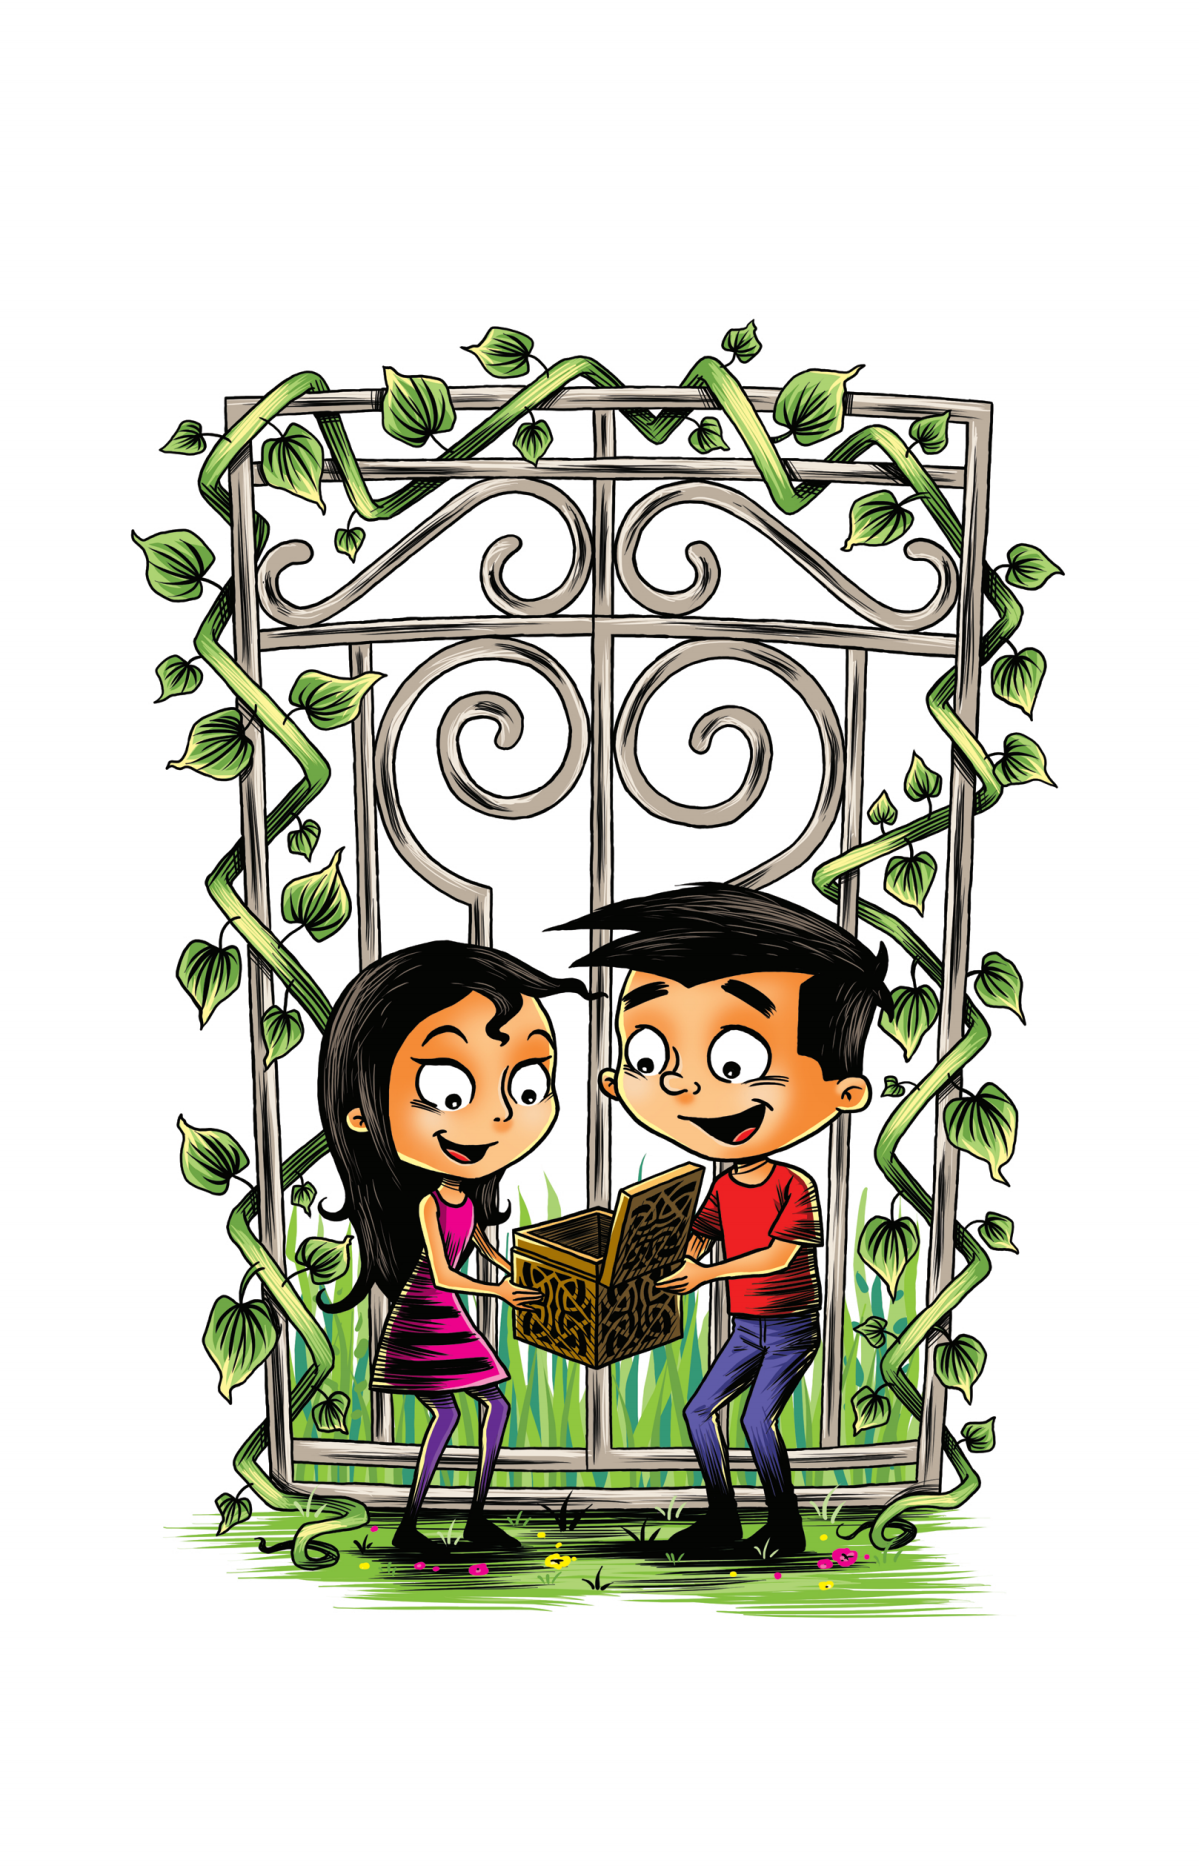 Illustrations for children's book: Stevie, Jane and the Special Box